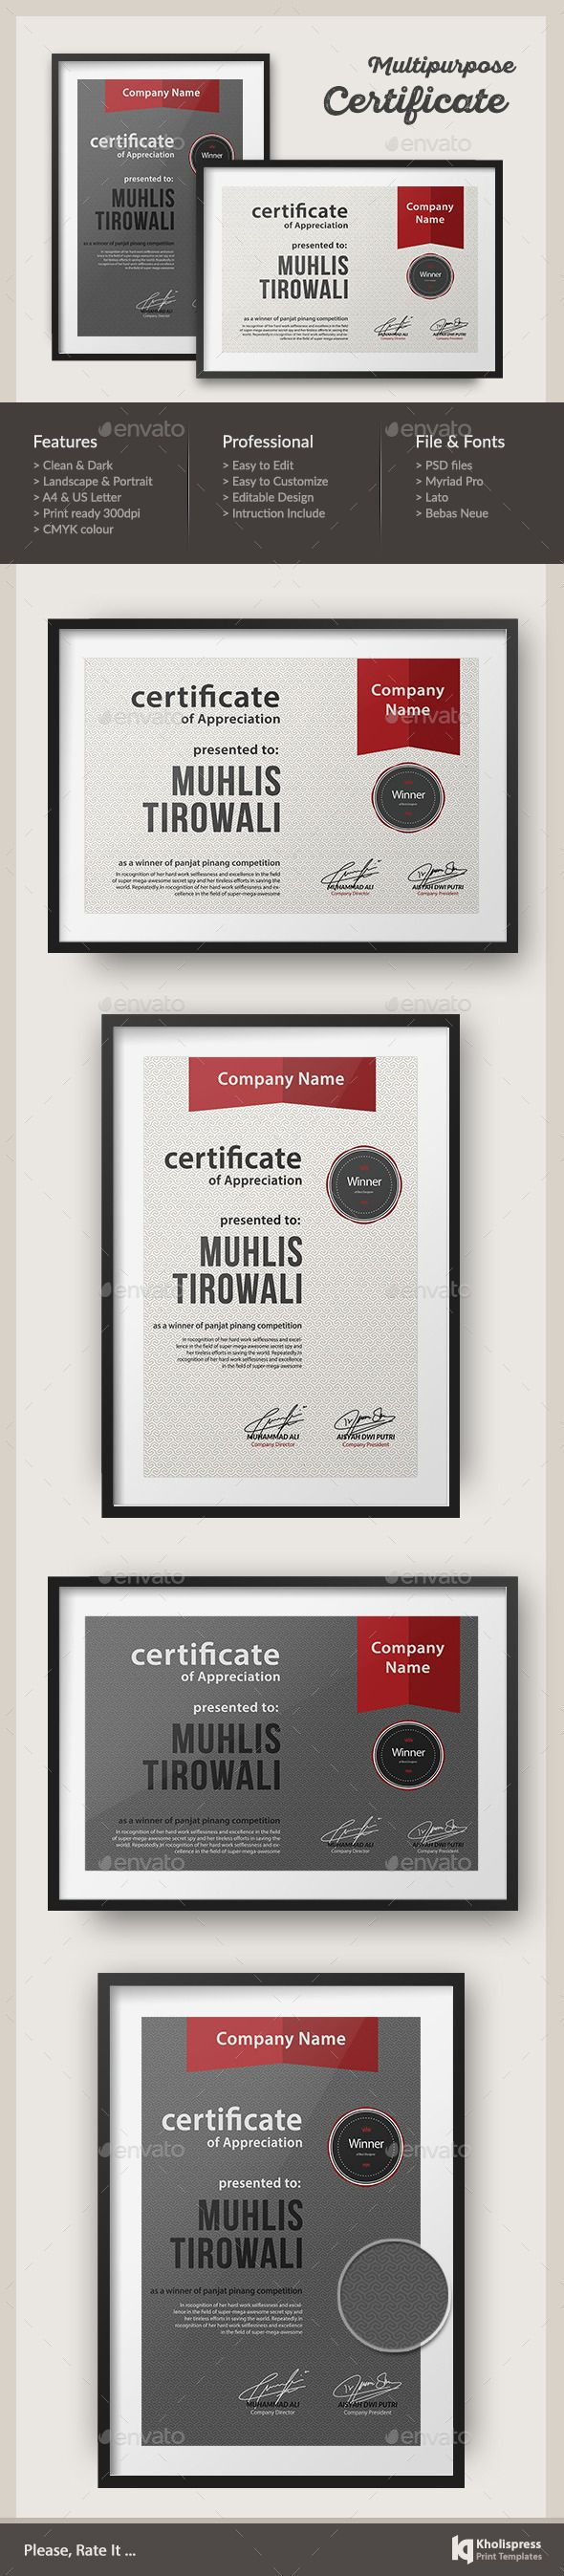 13 best certificate images on pinterest certificate templates pattern certificate letter templatespsd yadclub Choice Image